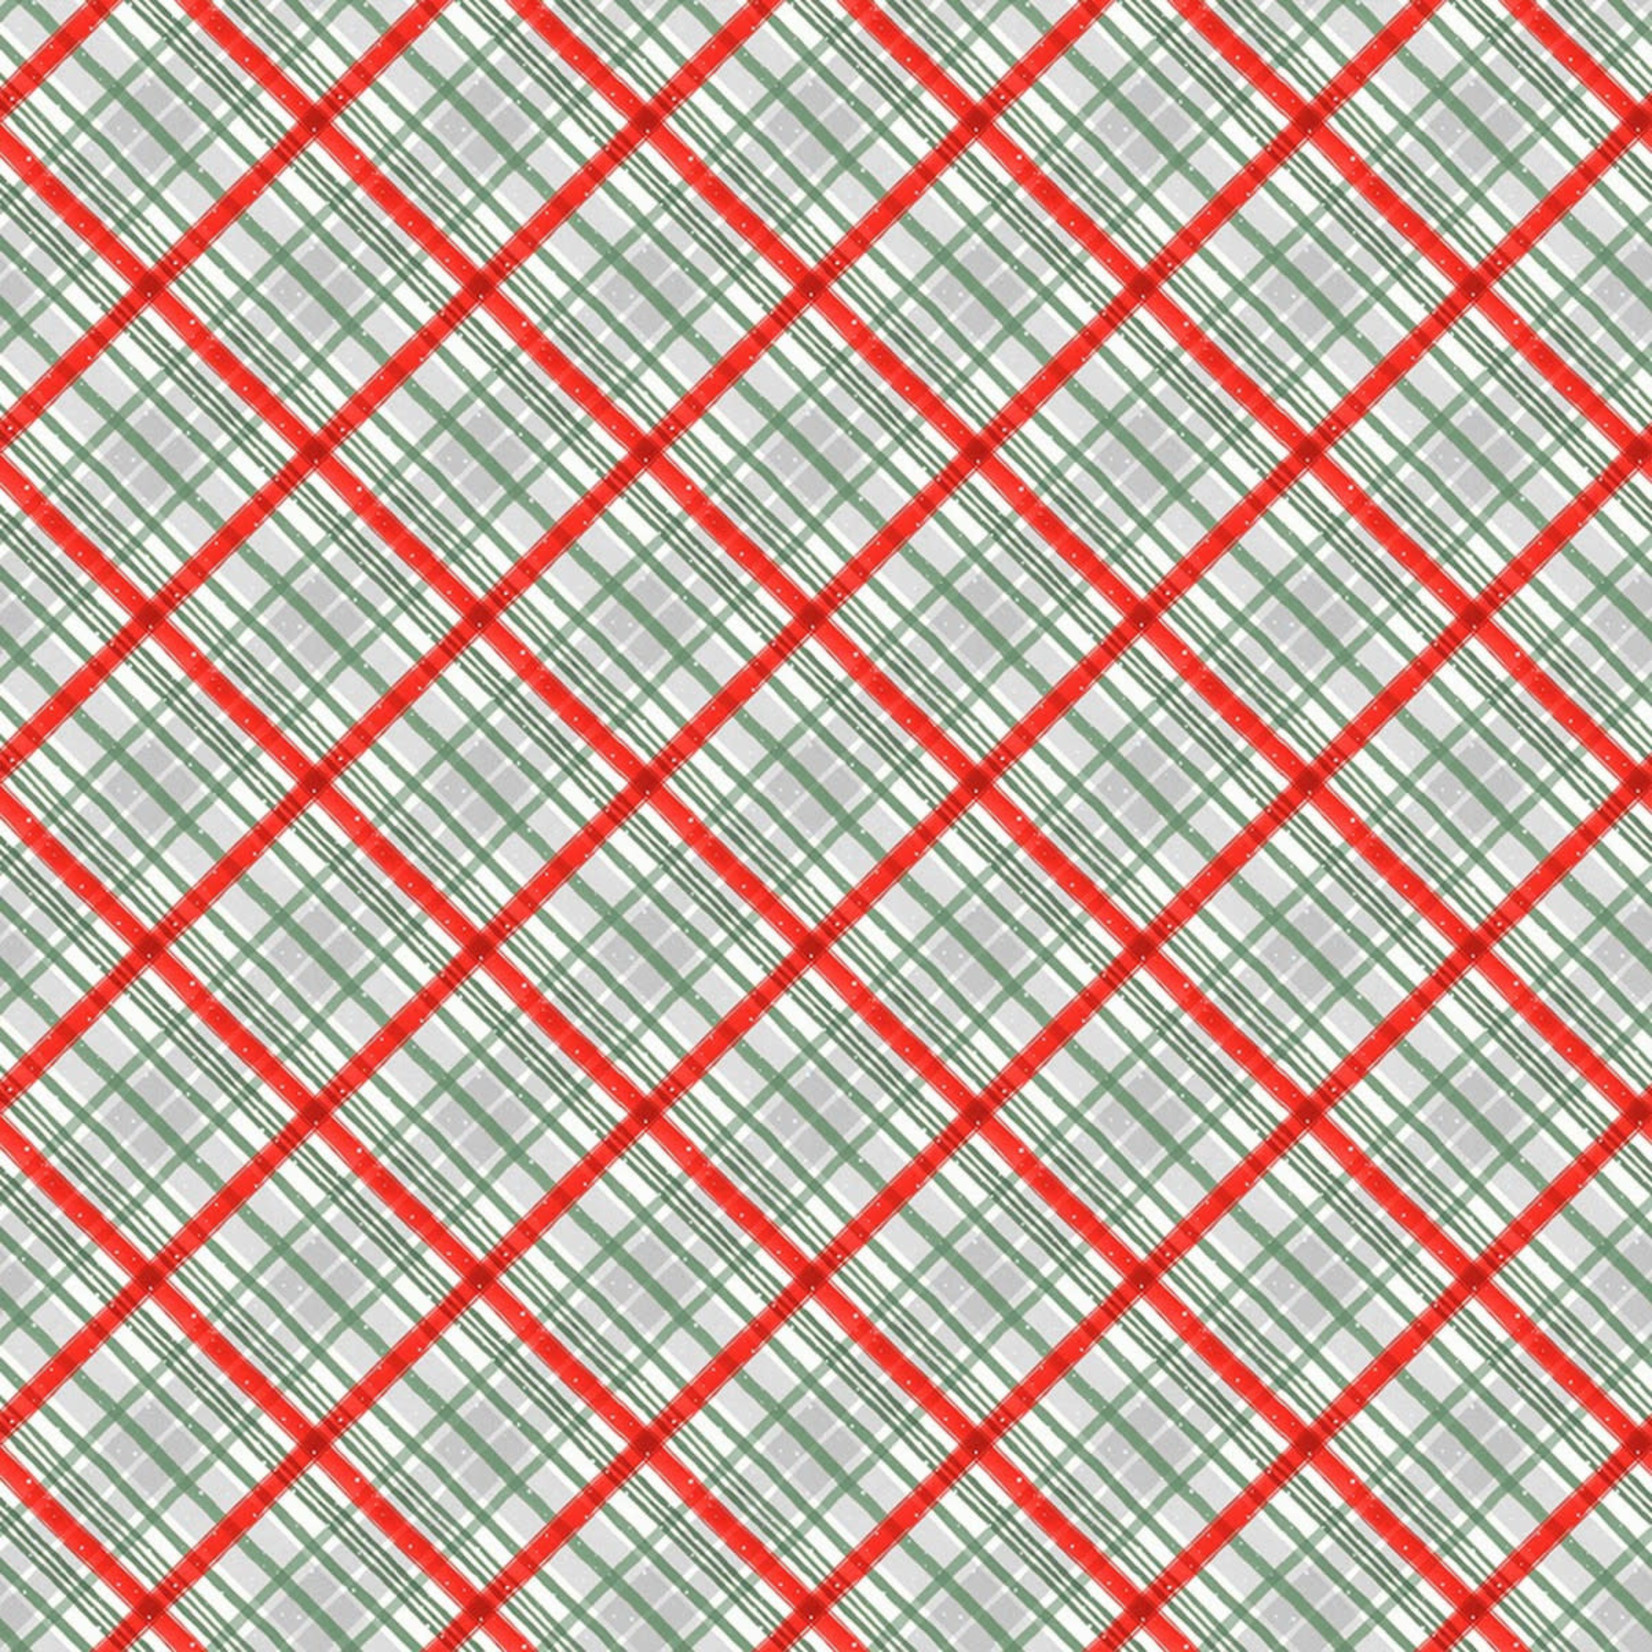 Lisa Audit A MAGICAL CHRISTMAS, PLAID, RED (86467-139) $0.20 /CM OR $20/M